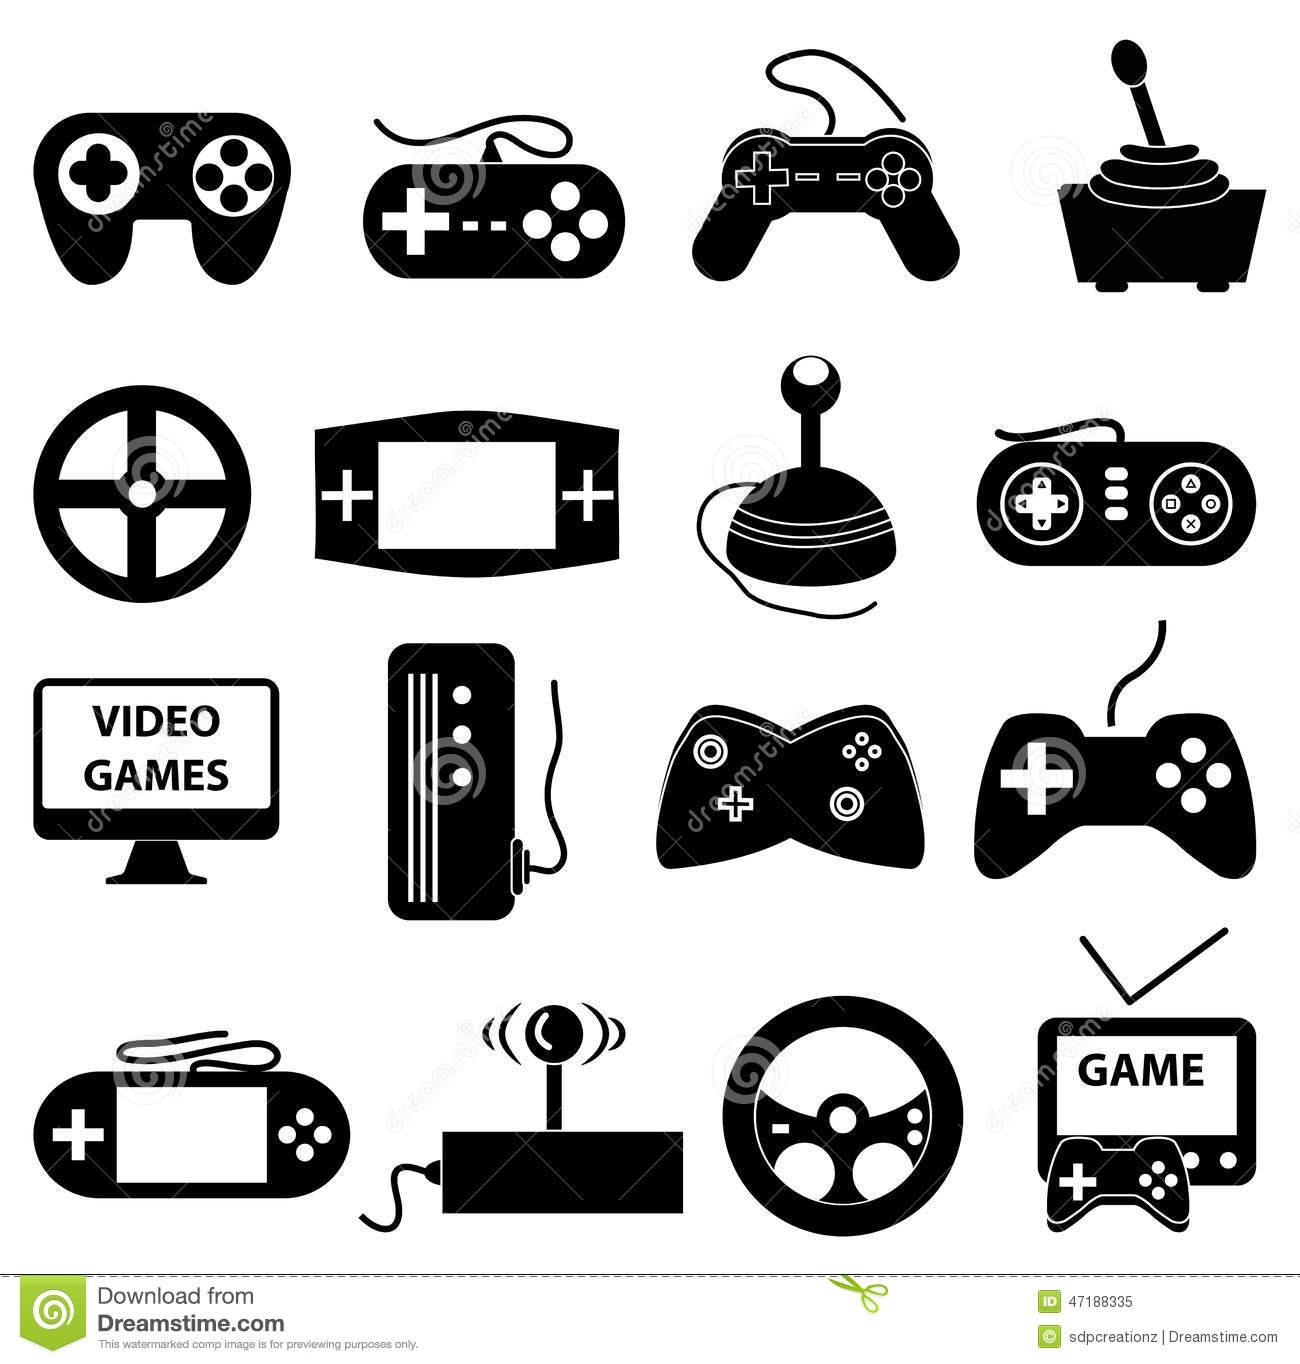 Video games icons set